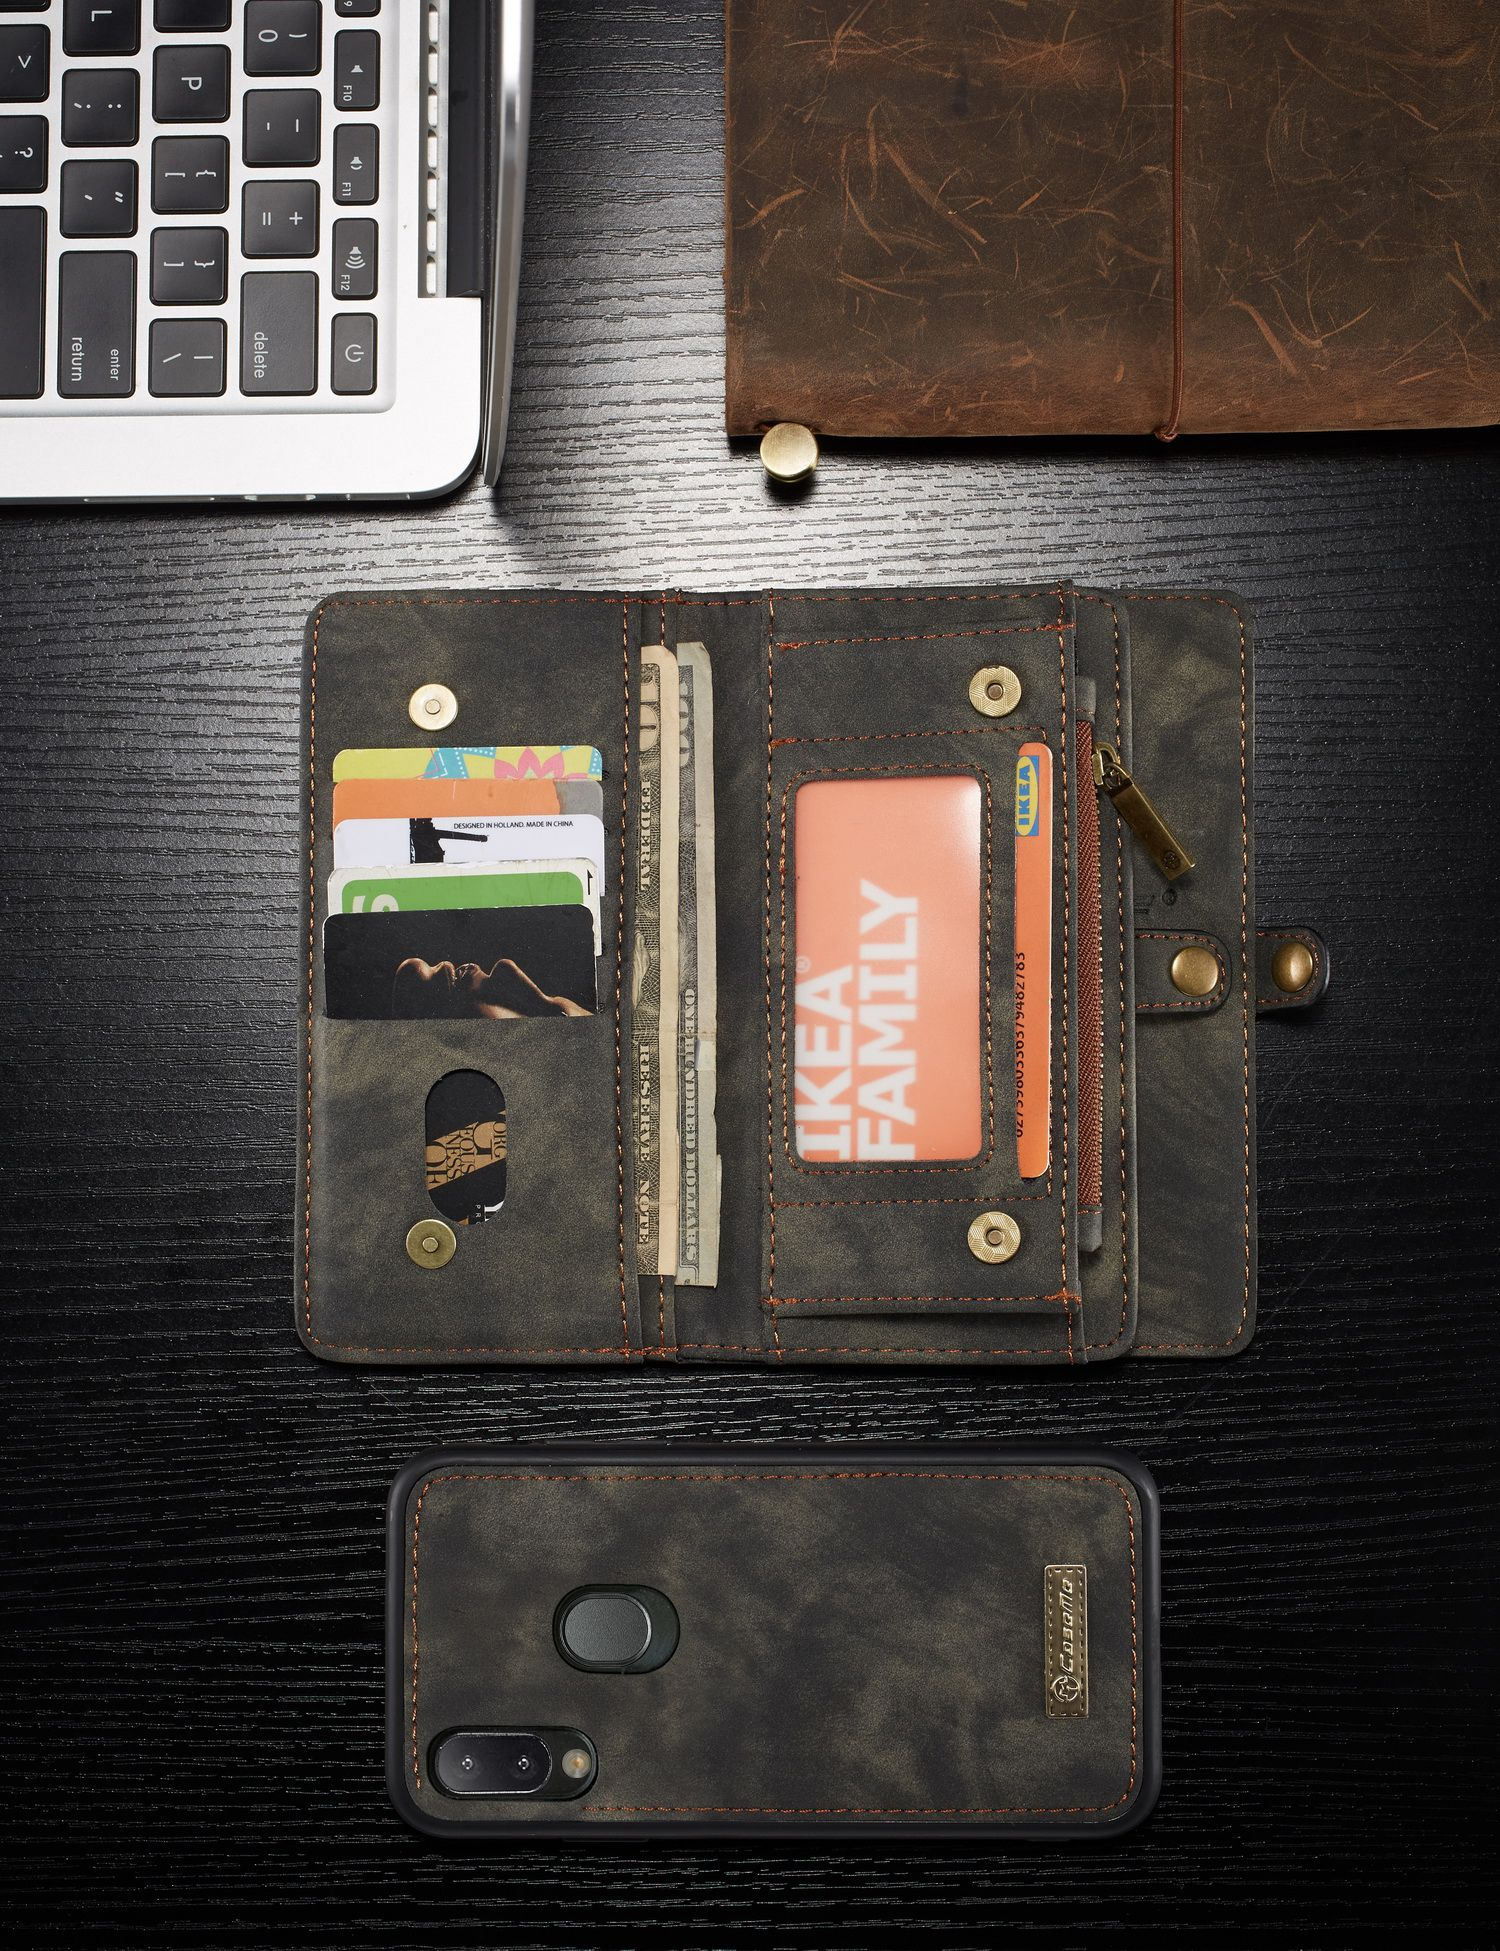 Samsung A20e Caseme (With images) Wallet, Obesity